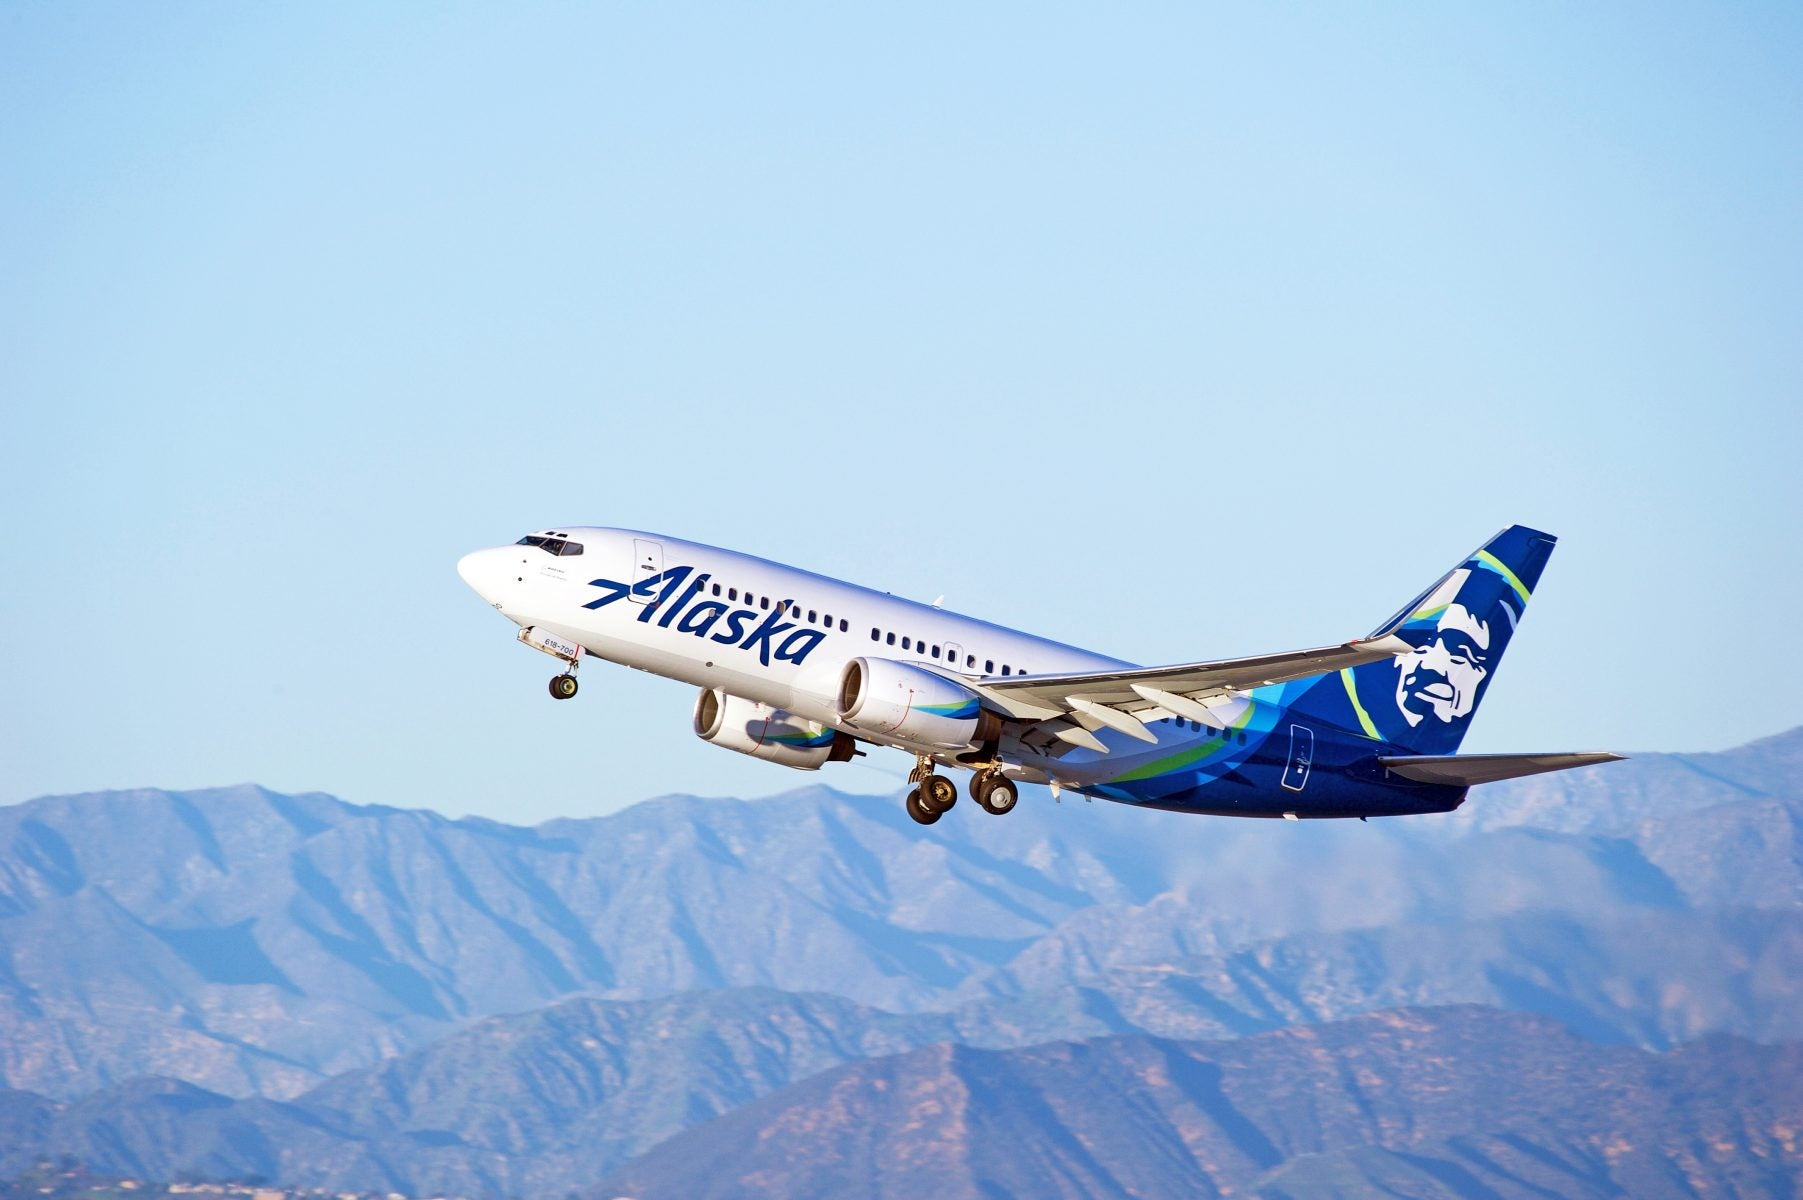 How to earn Alaska Airlines miles in 2020